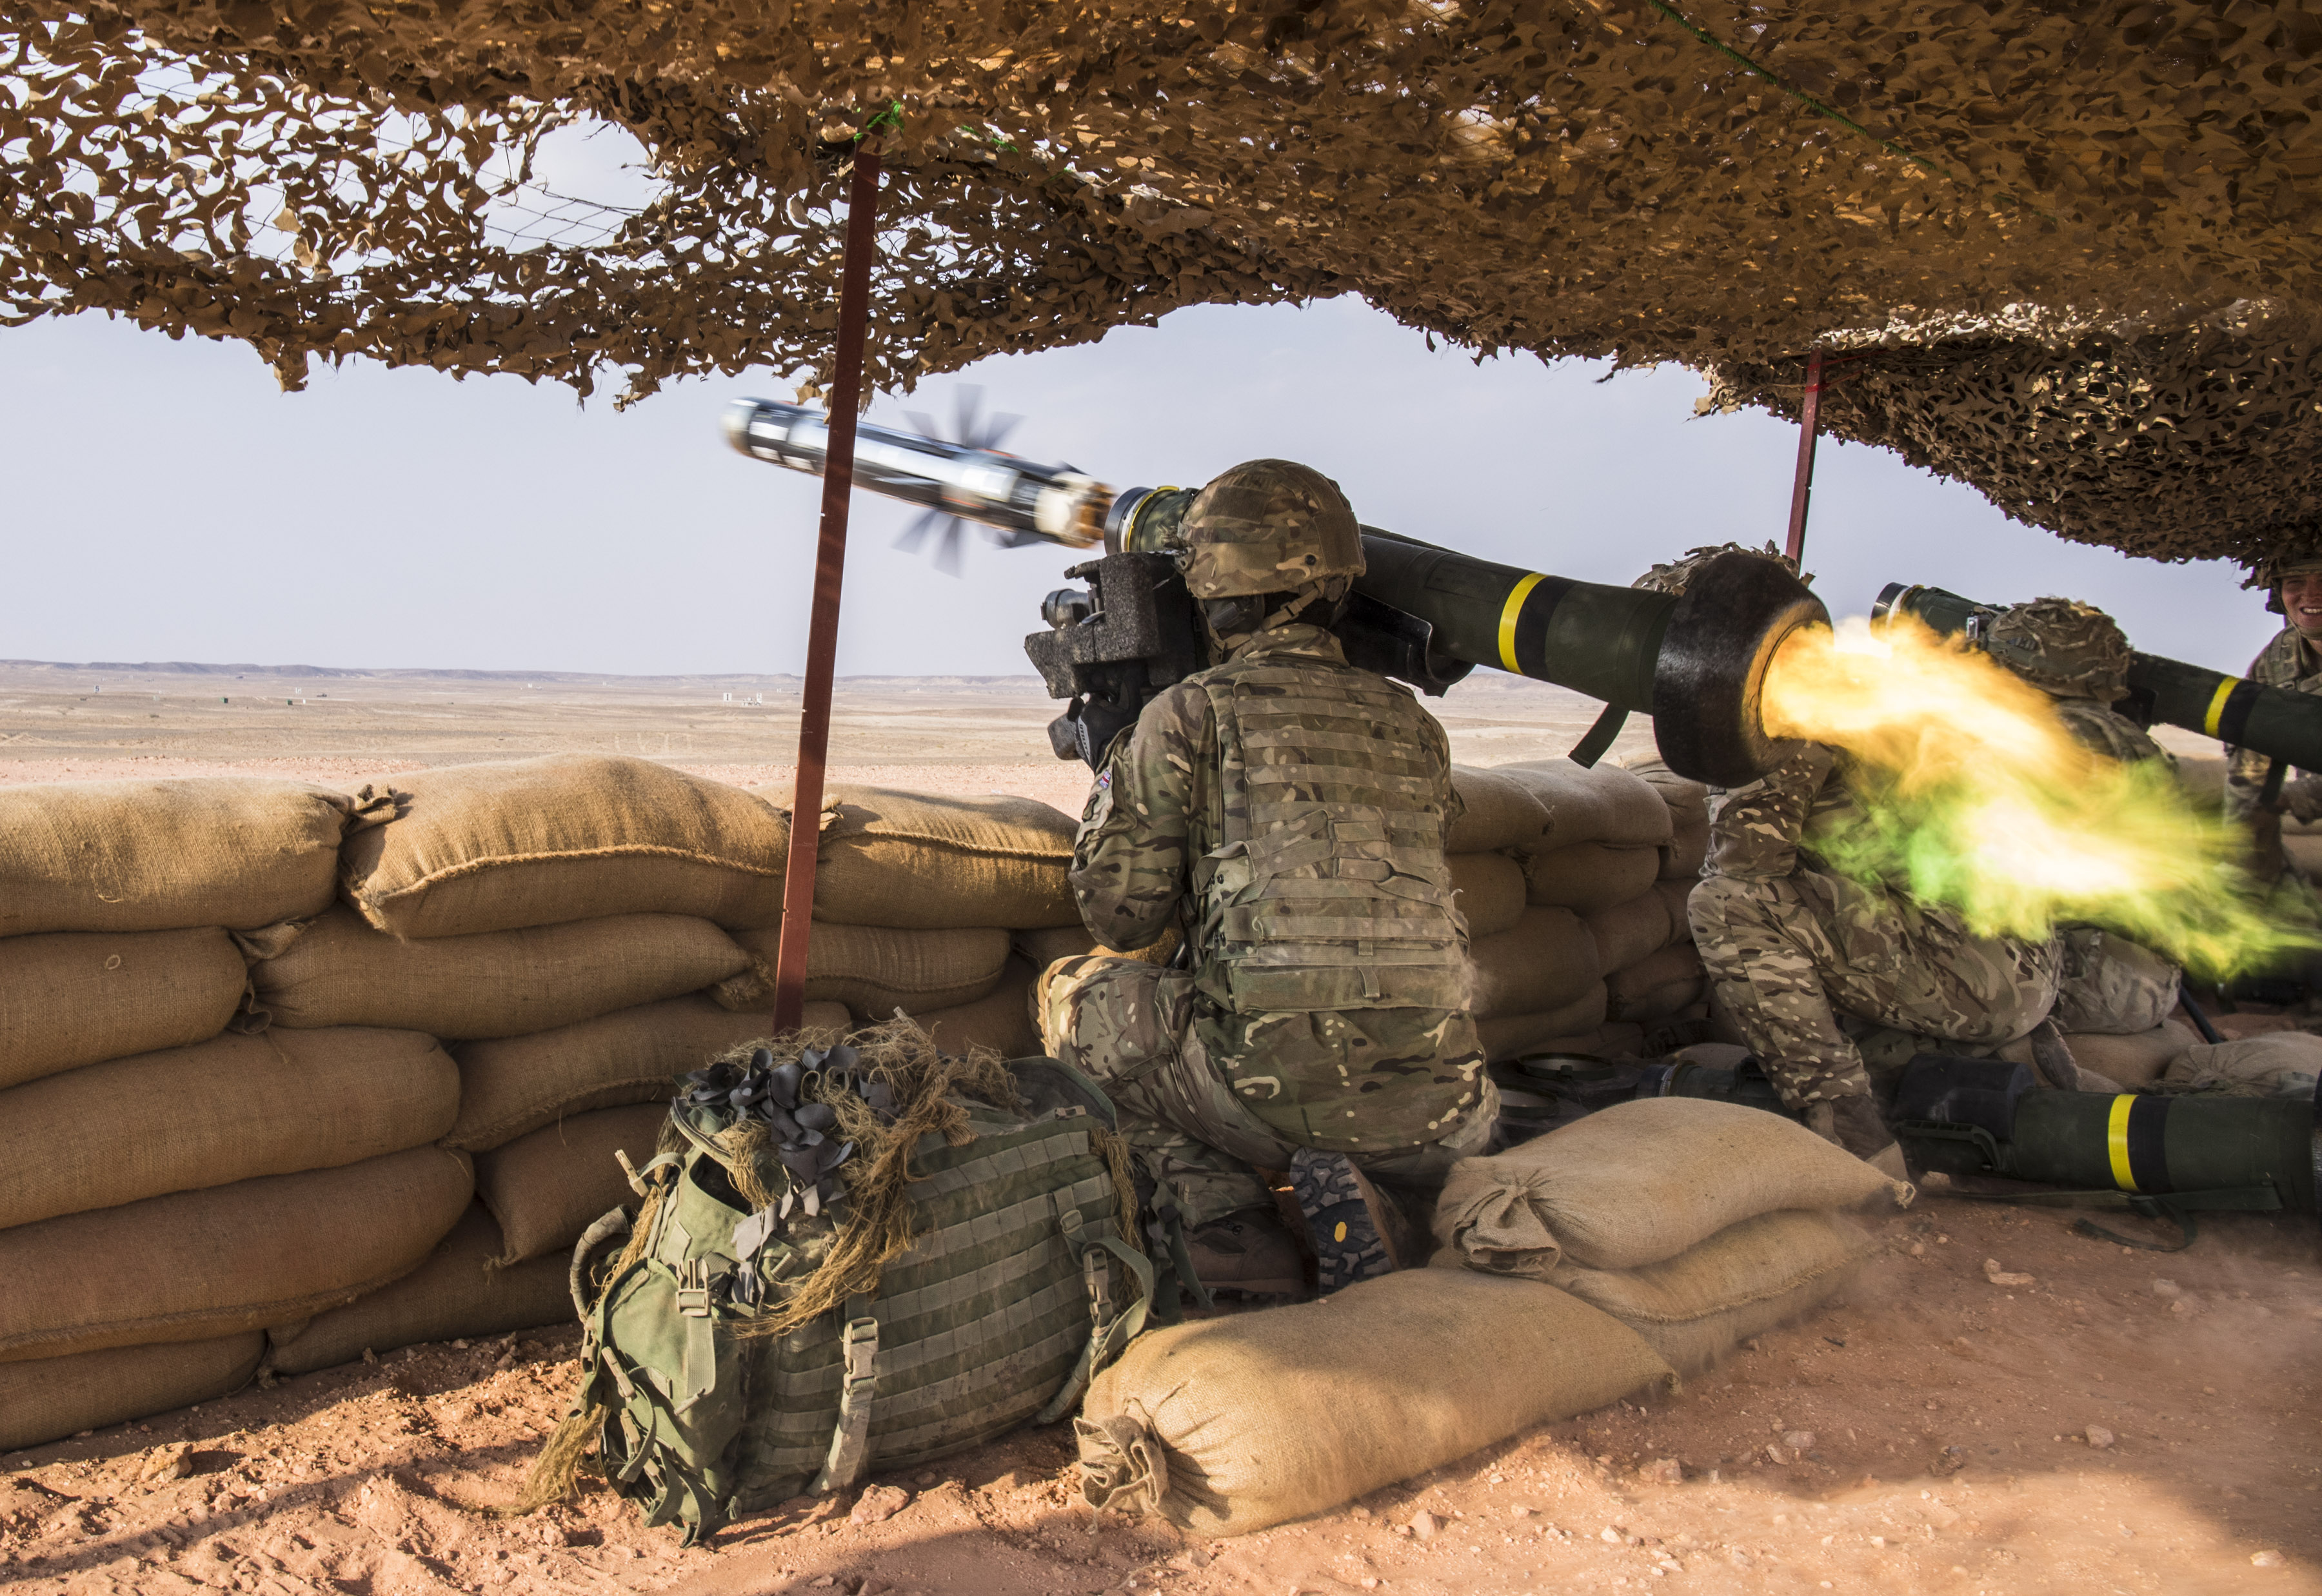 Pictured: A Javelin missile is fired by 1 Mercian at the Fire Power Demonstation Area near the Convoy Support Centre during Exercise Saif Sareea 3 in Oman. A total of 4 Javelin missiles were fired today for training purposes at the Fire Power Demonstation Area by The British Army 1 Mercian Unit.